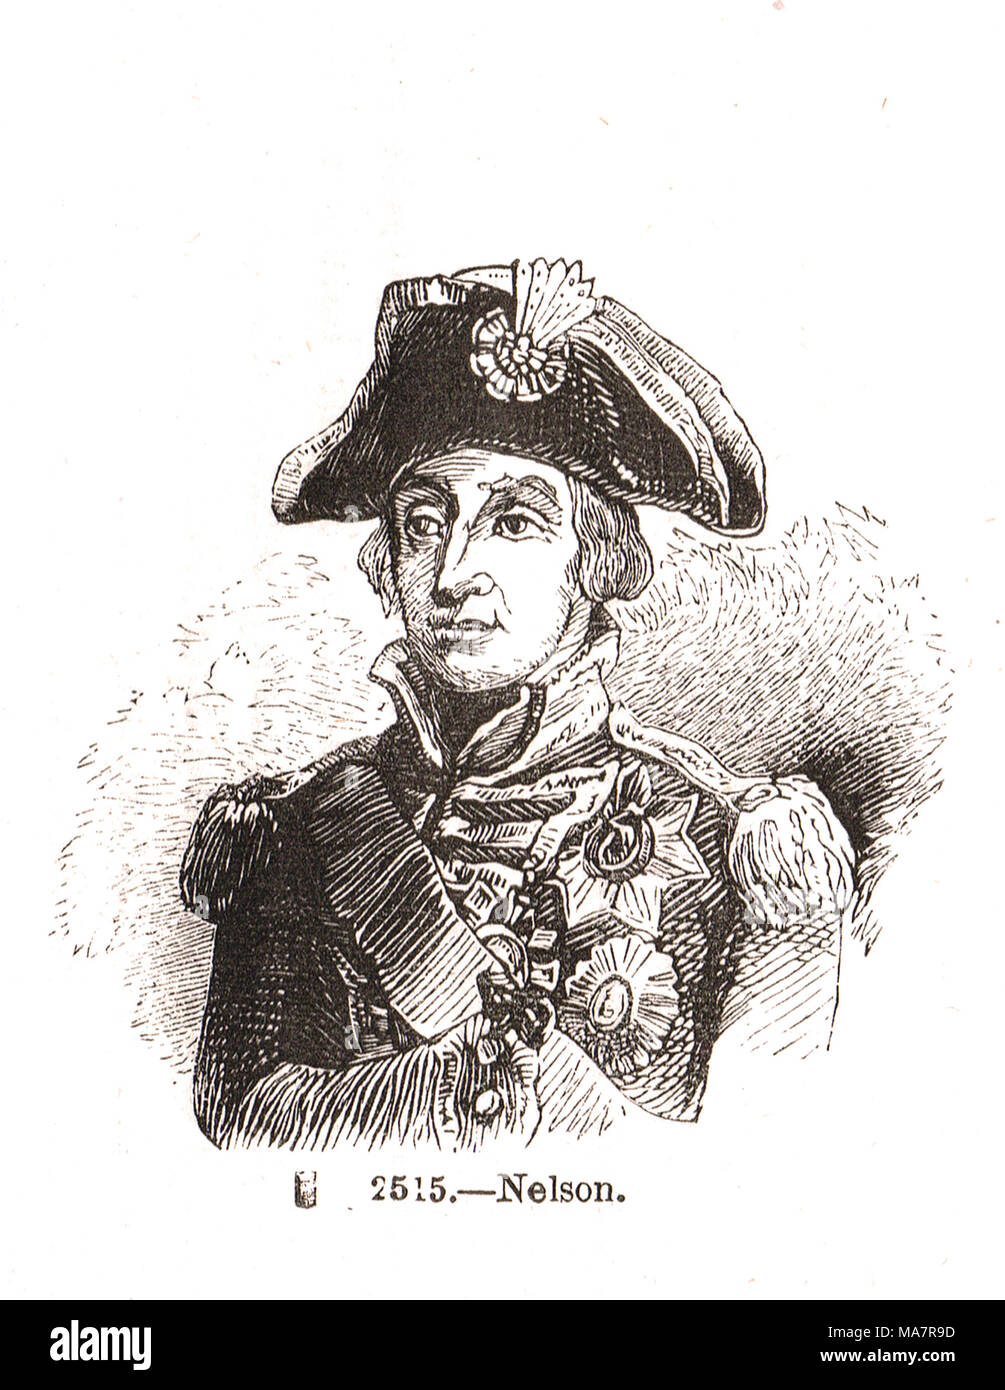 Vice Admiral Horatio Nelson (1758-1805) Stock Photo